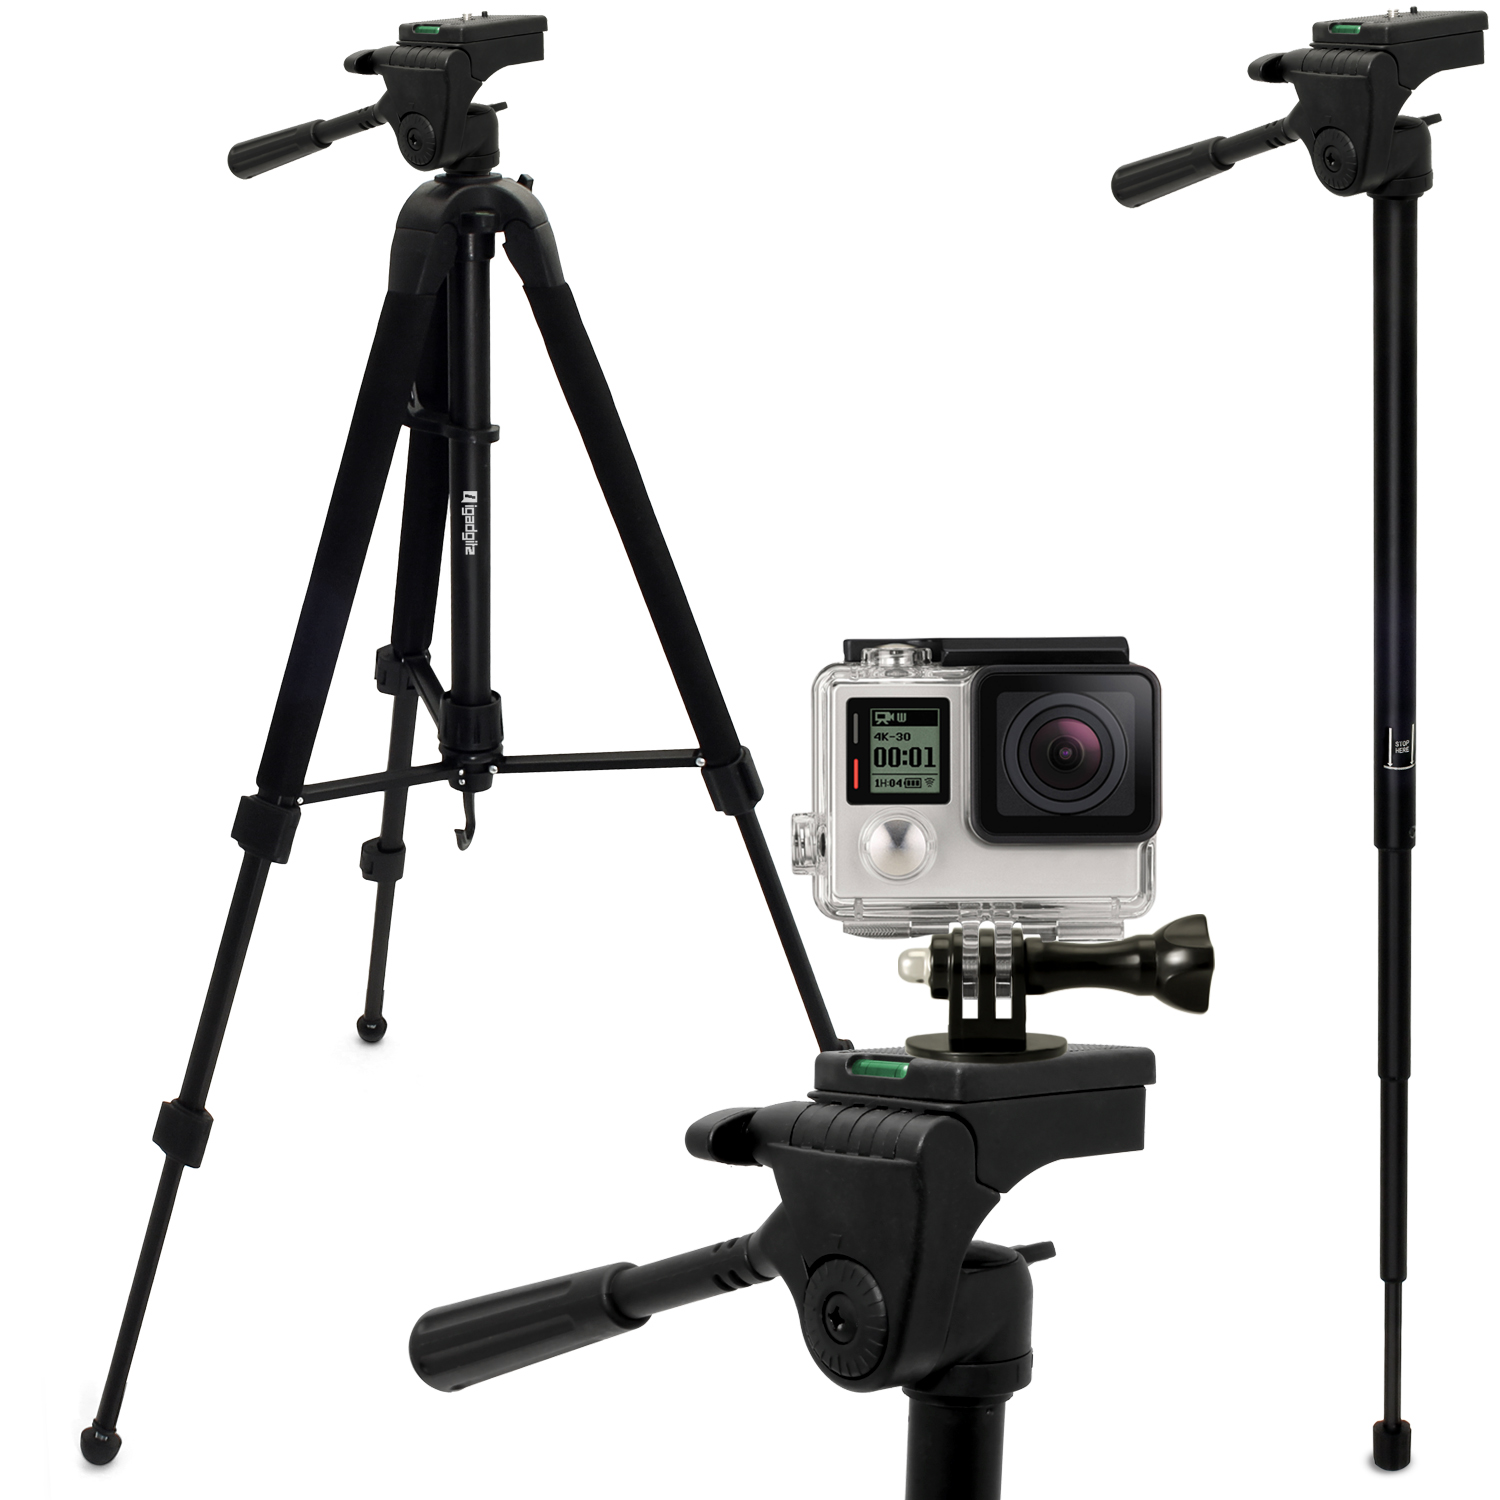 "iGadgitz 150cm 59"" 2 in 1 Aluminium Travel Tripod & Monopod + Adaptor Mount for Go Pro Hero6, Fusion, Hero5 Black & Session, 4, 3+, 3, 2, 1, Session"